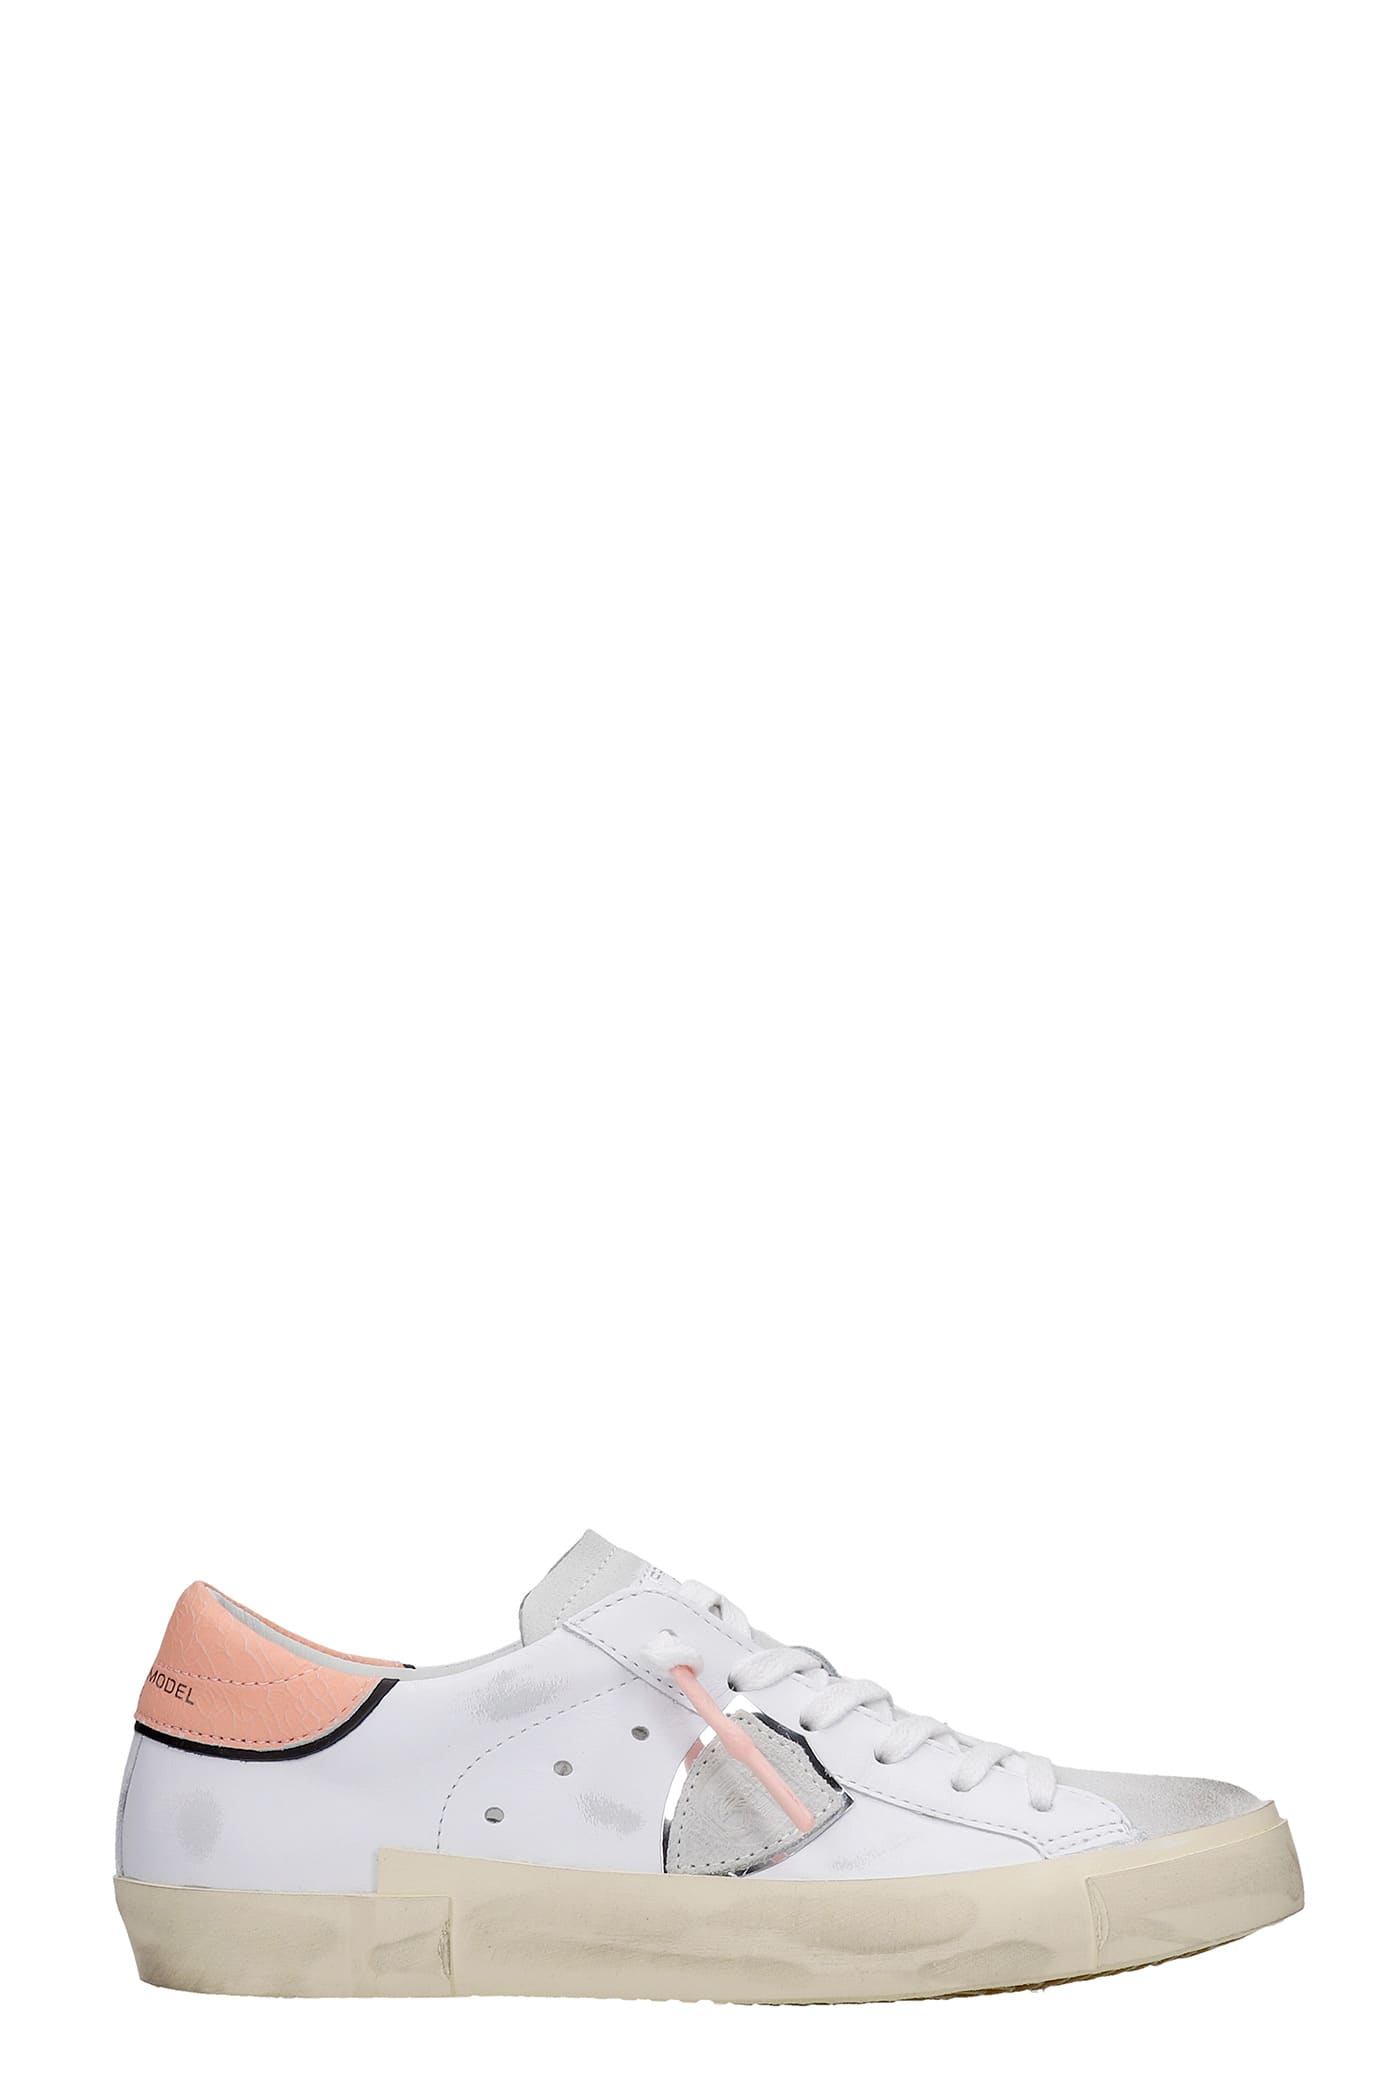 Philippe Model Low tops PRSX SNEAKERS IN WHITE SUEDE AND LEATHER